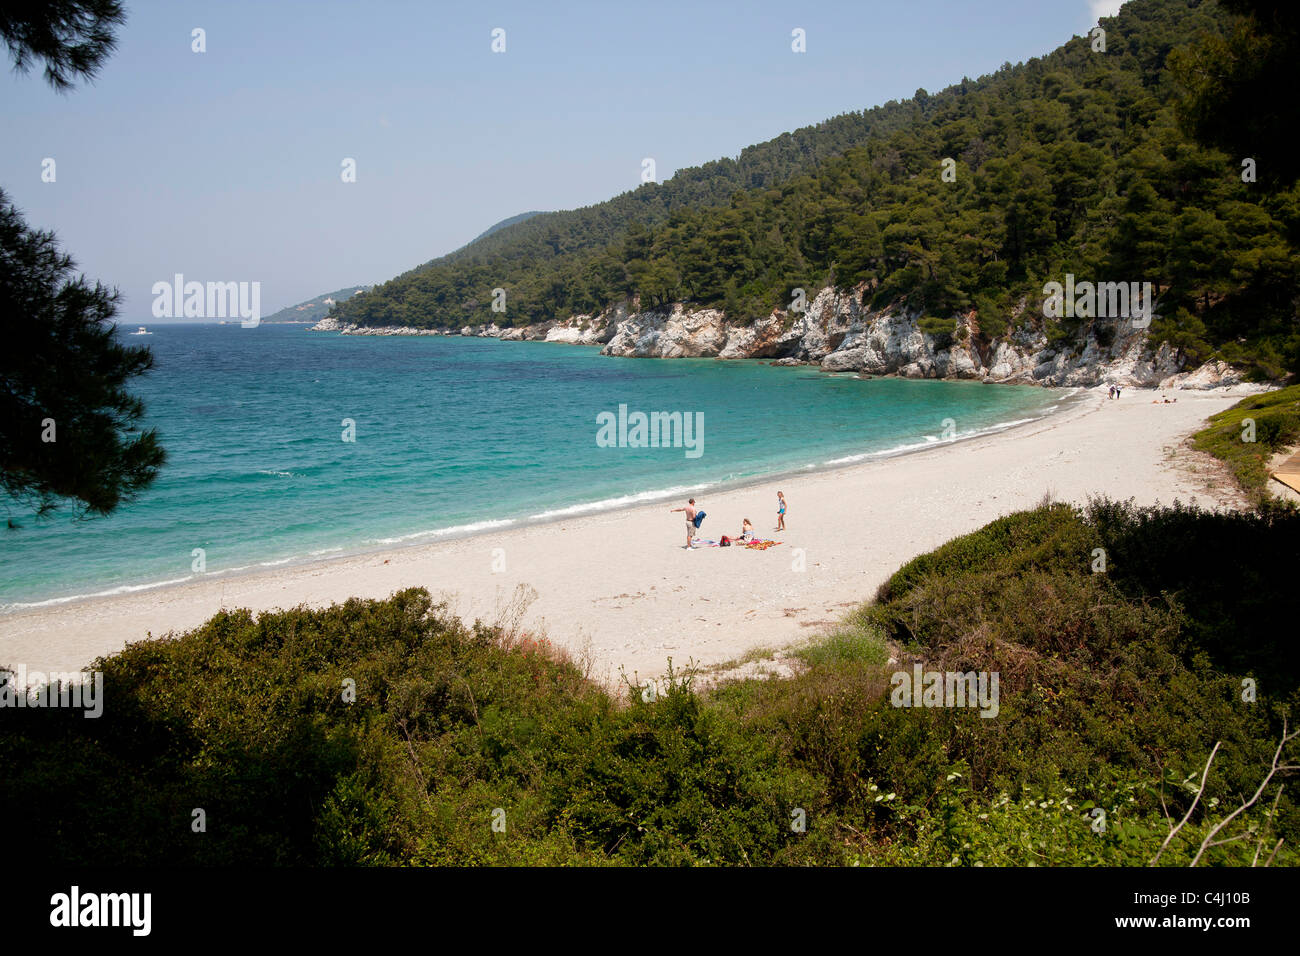 gialos kastani beach and bay mamma mia movie location on skopelos stock photo 37275291 alamy. Black Bedroom Furniture Sets. Home Design Ideas